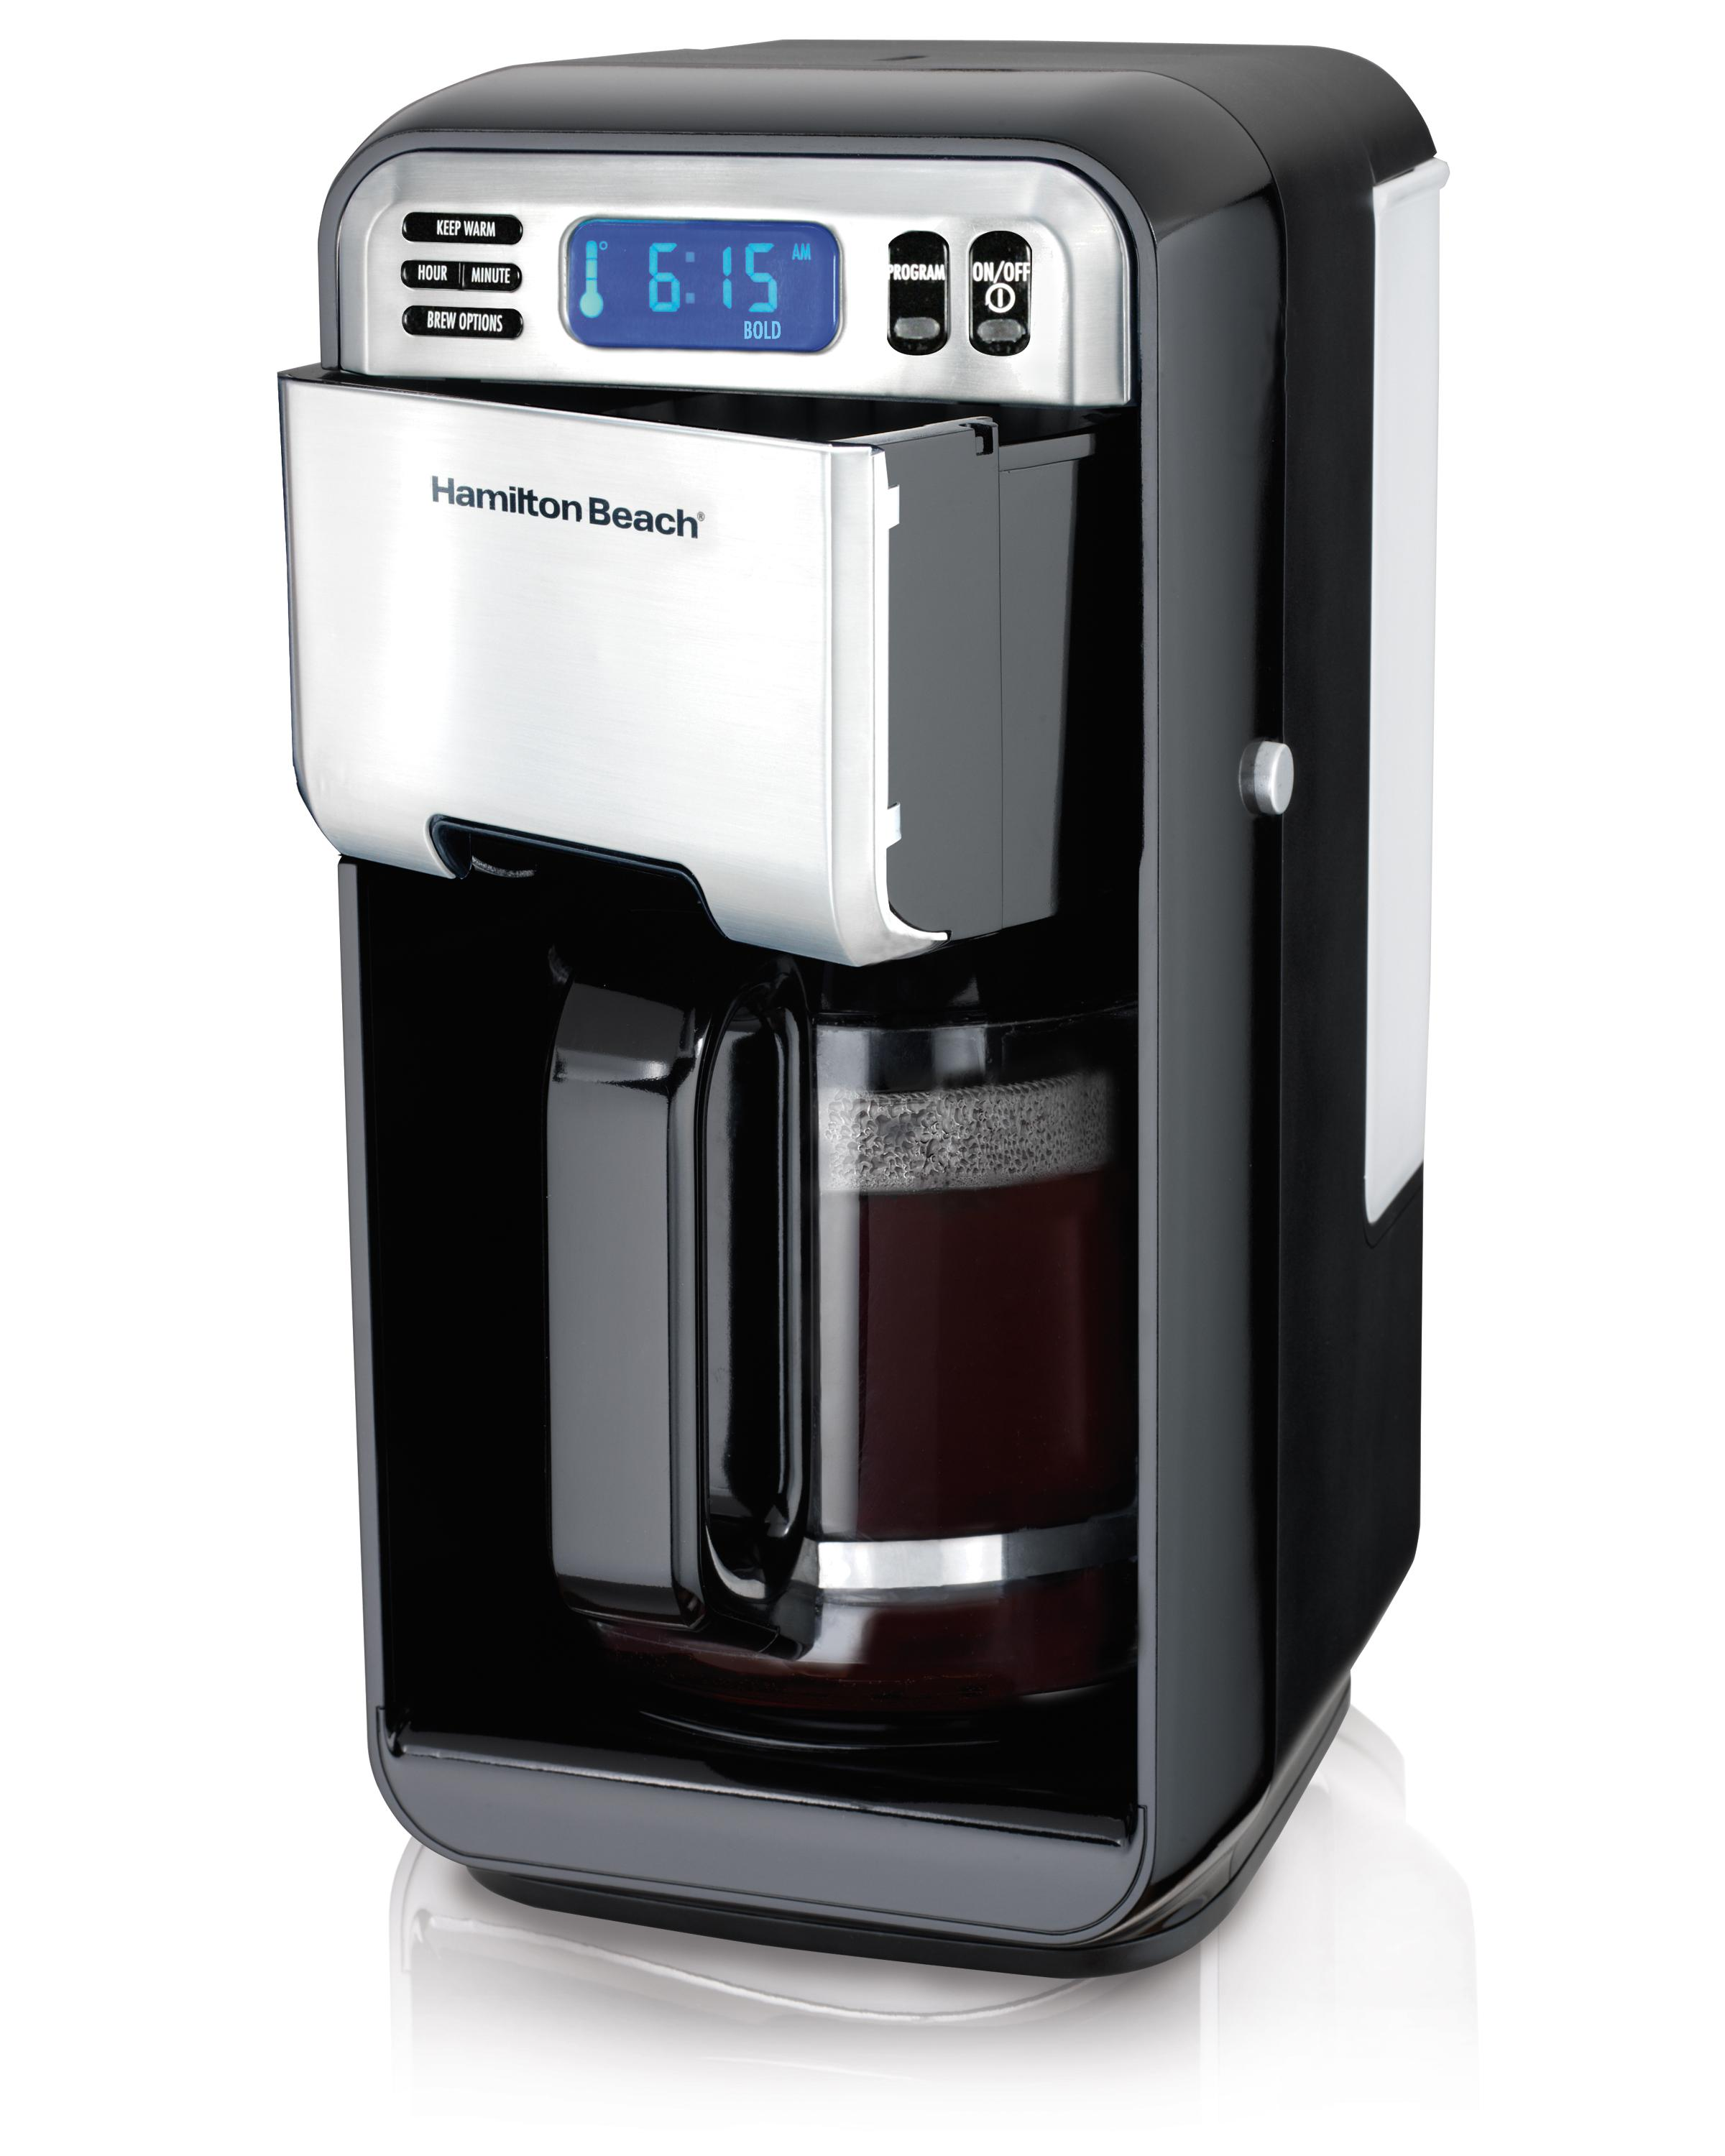 Hamilton beach 46201 12 cup digital coffeemaker stainless Coffee maker brands